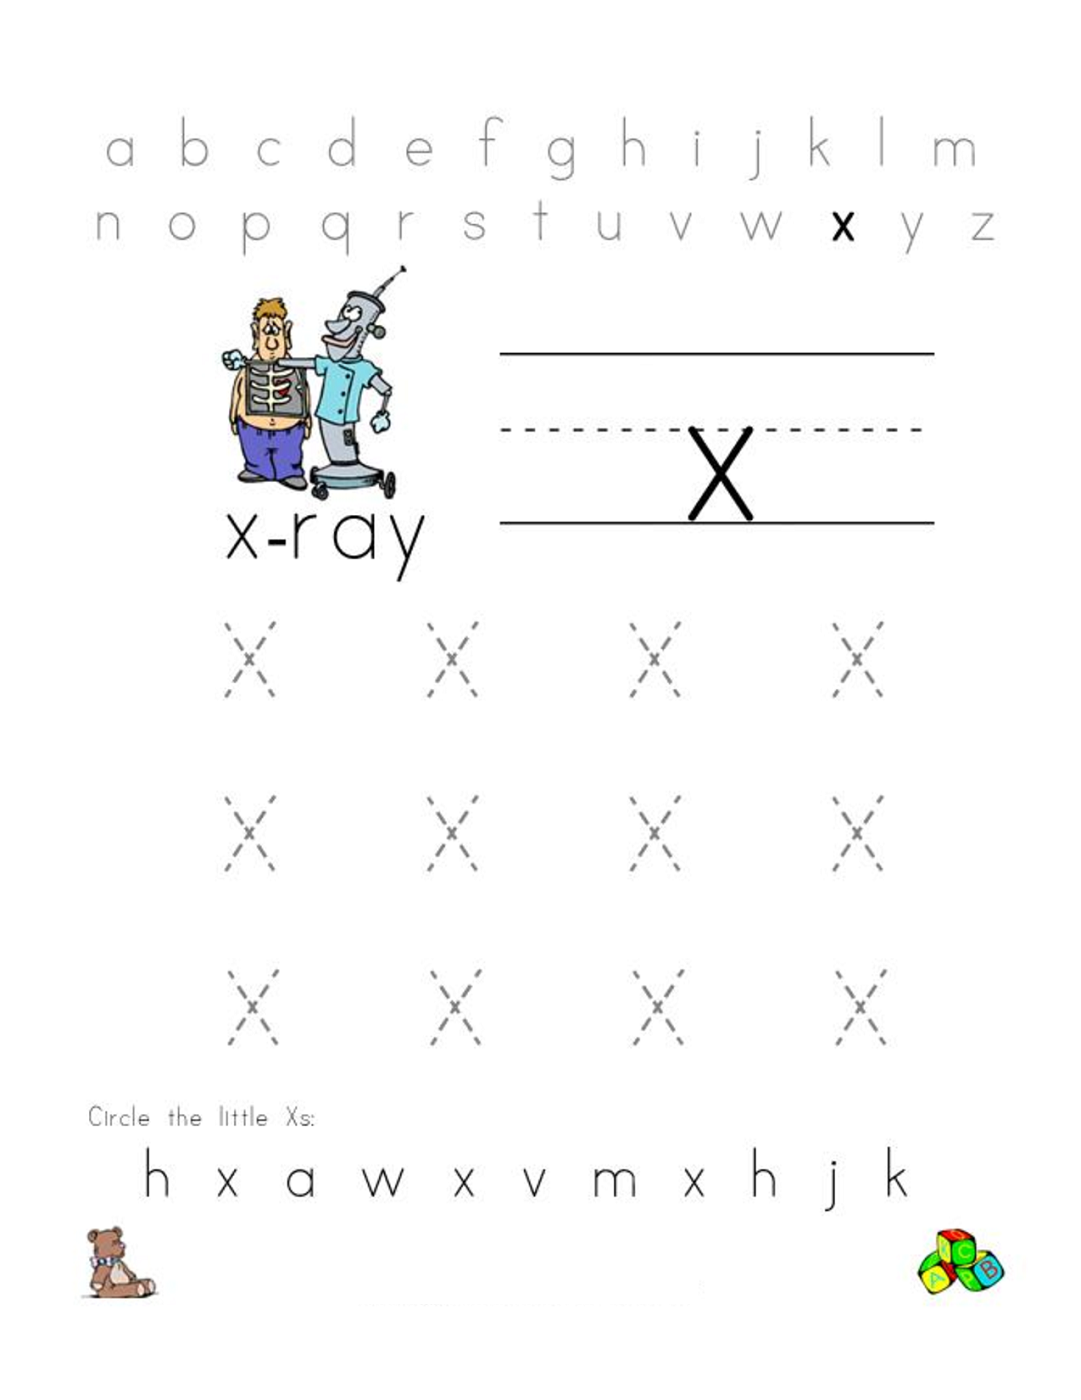 english-alphabet-worksheet-x-letters  X Alphabet Letters Template on for tracing, for kids, medium printable, free printable large,